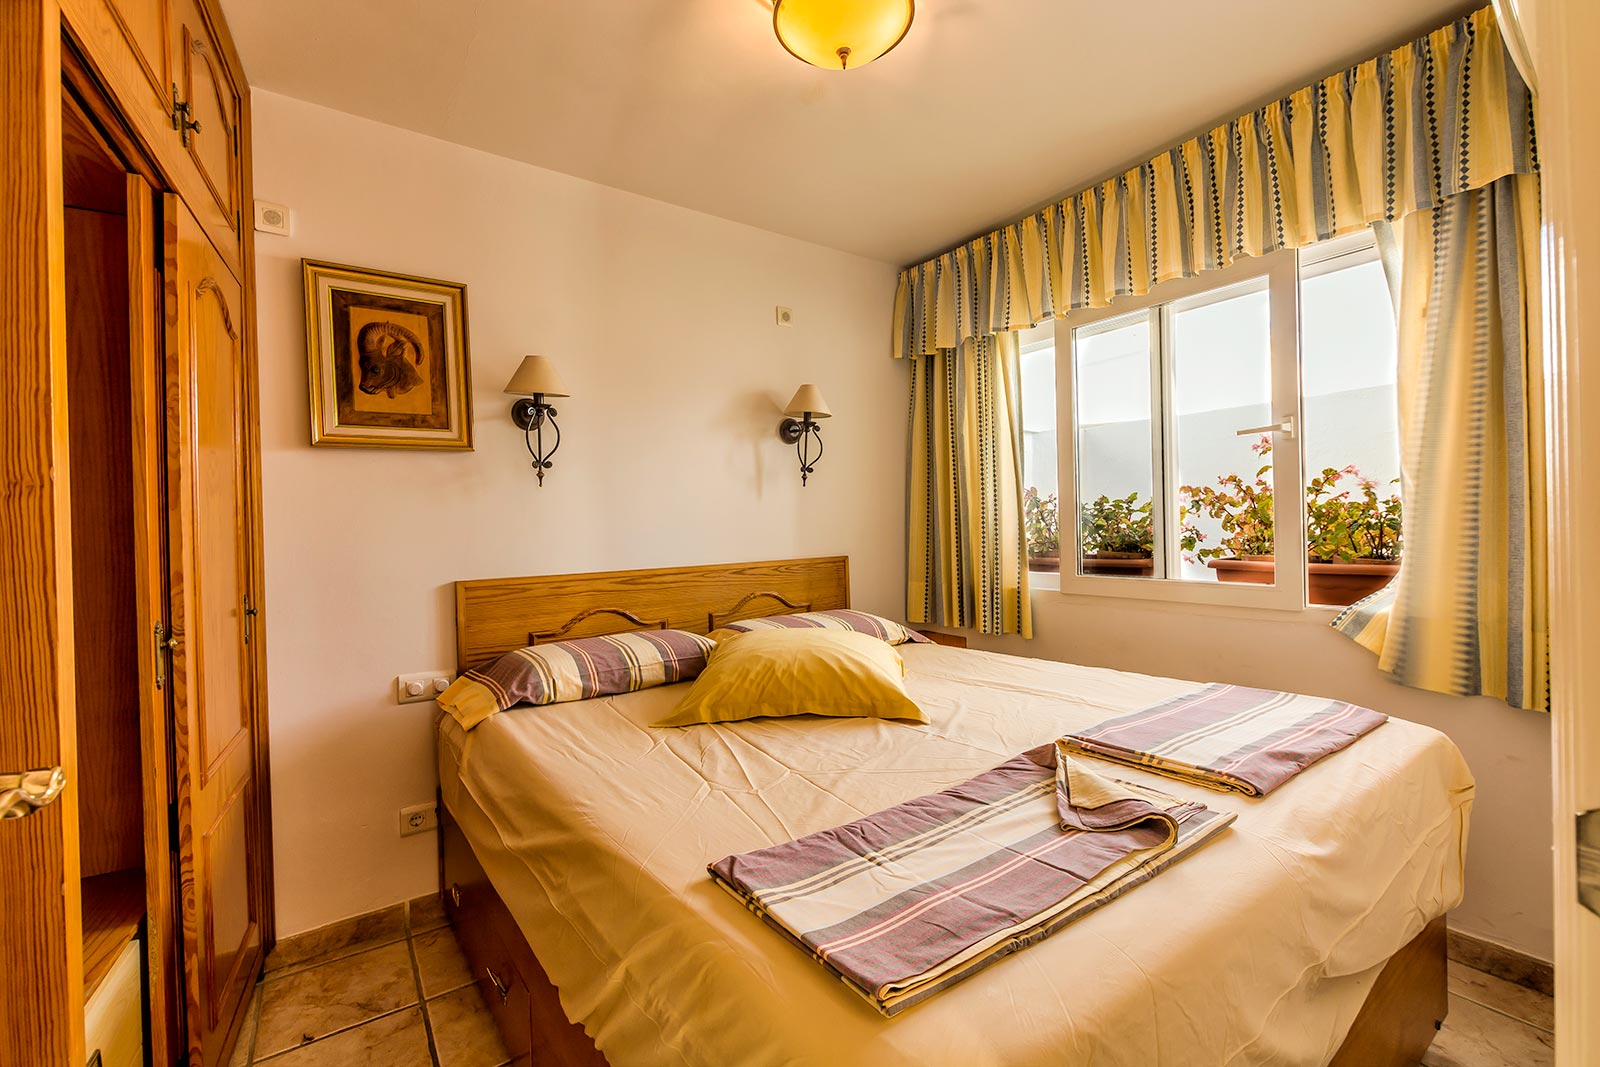 Casa charlotte 2nd floor better apartments nerja - 1 bedroom apartment salt lake hawaii ...